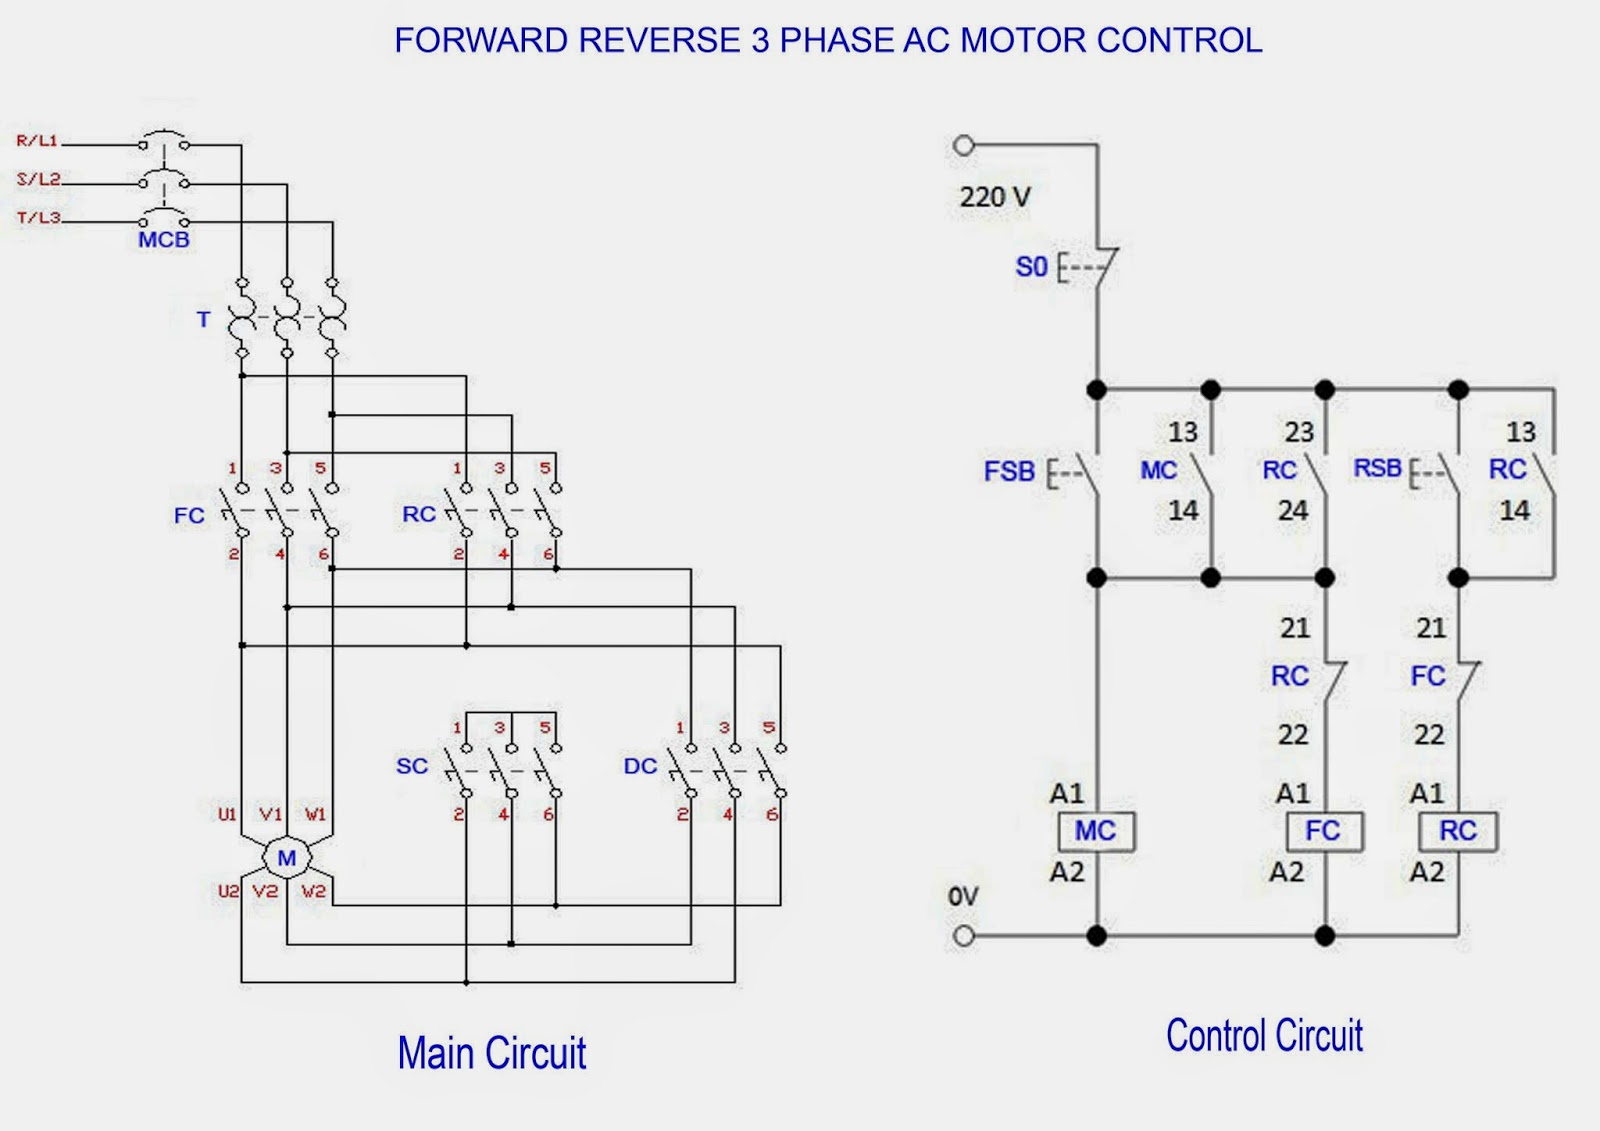 Delta 3 Phase Motor Circuit Diagram Trusted Wiring Open Transformer Wye Tubs Over Head Electrical 3ph